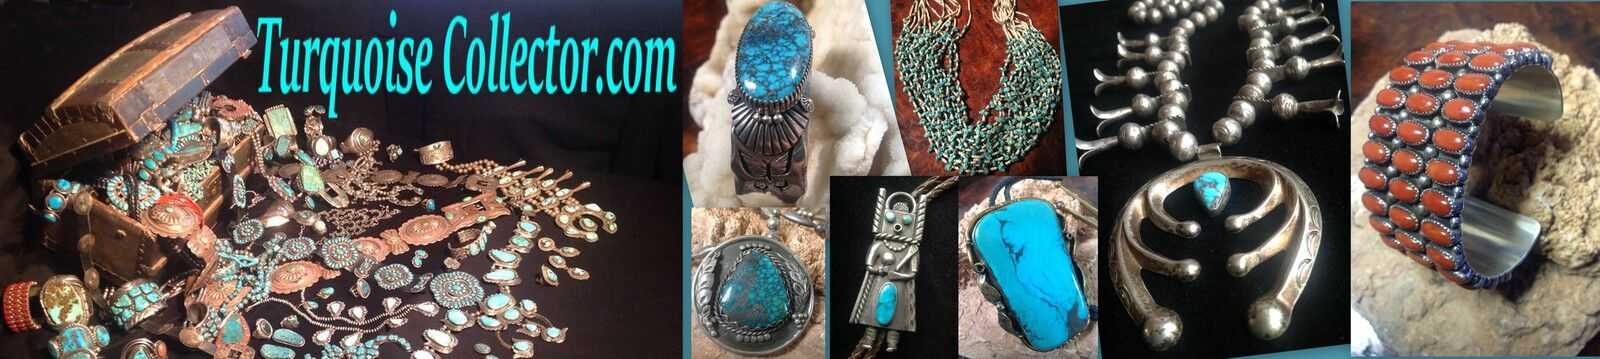 Turquoise Collector